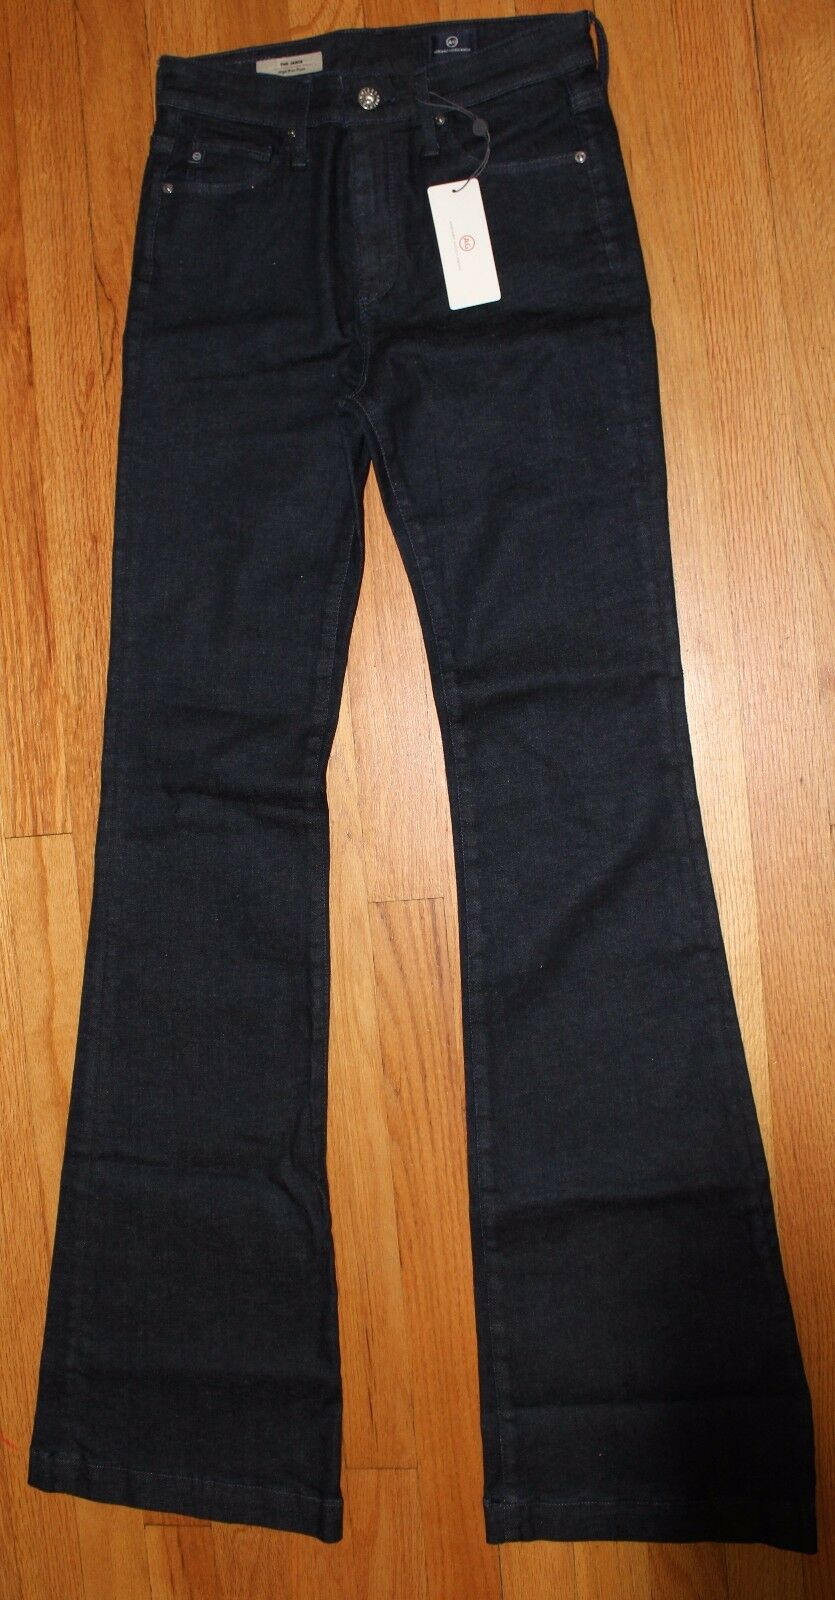 198 AG ADRIANO goldSCHMIED THE JANIS HIGH RISE FLARE JEANS SZ 26